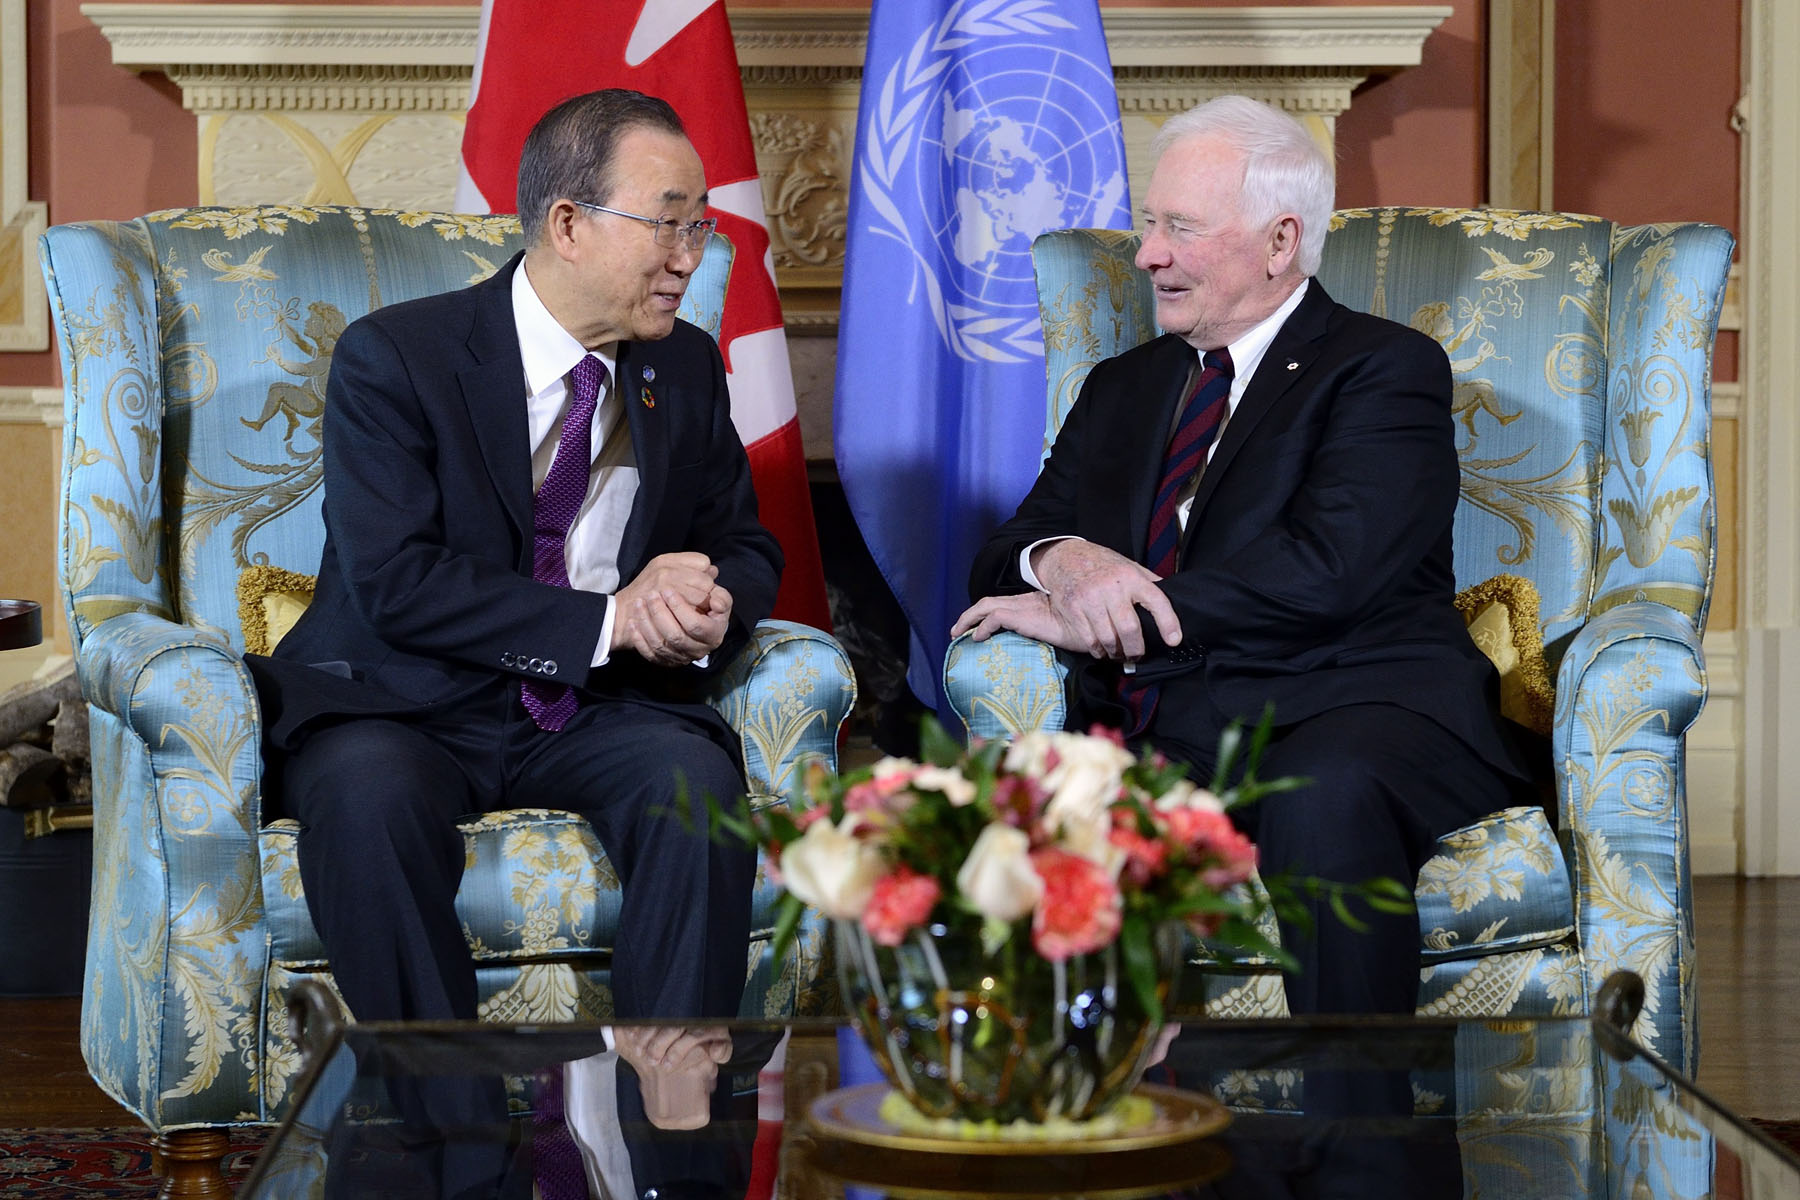 During the meeting, the Governor General and the Secretary-General had the opportunity to discuss Canada's long tradition of international collaboration, as well as its involvement in the United Nations.